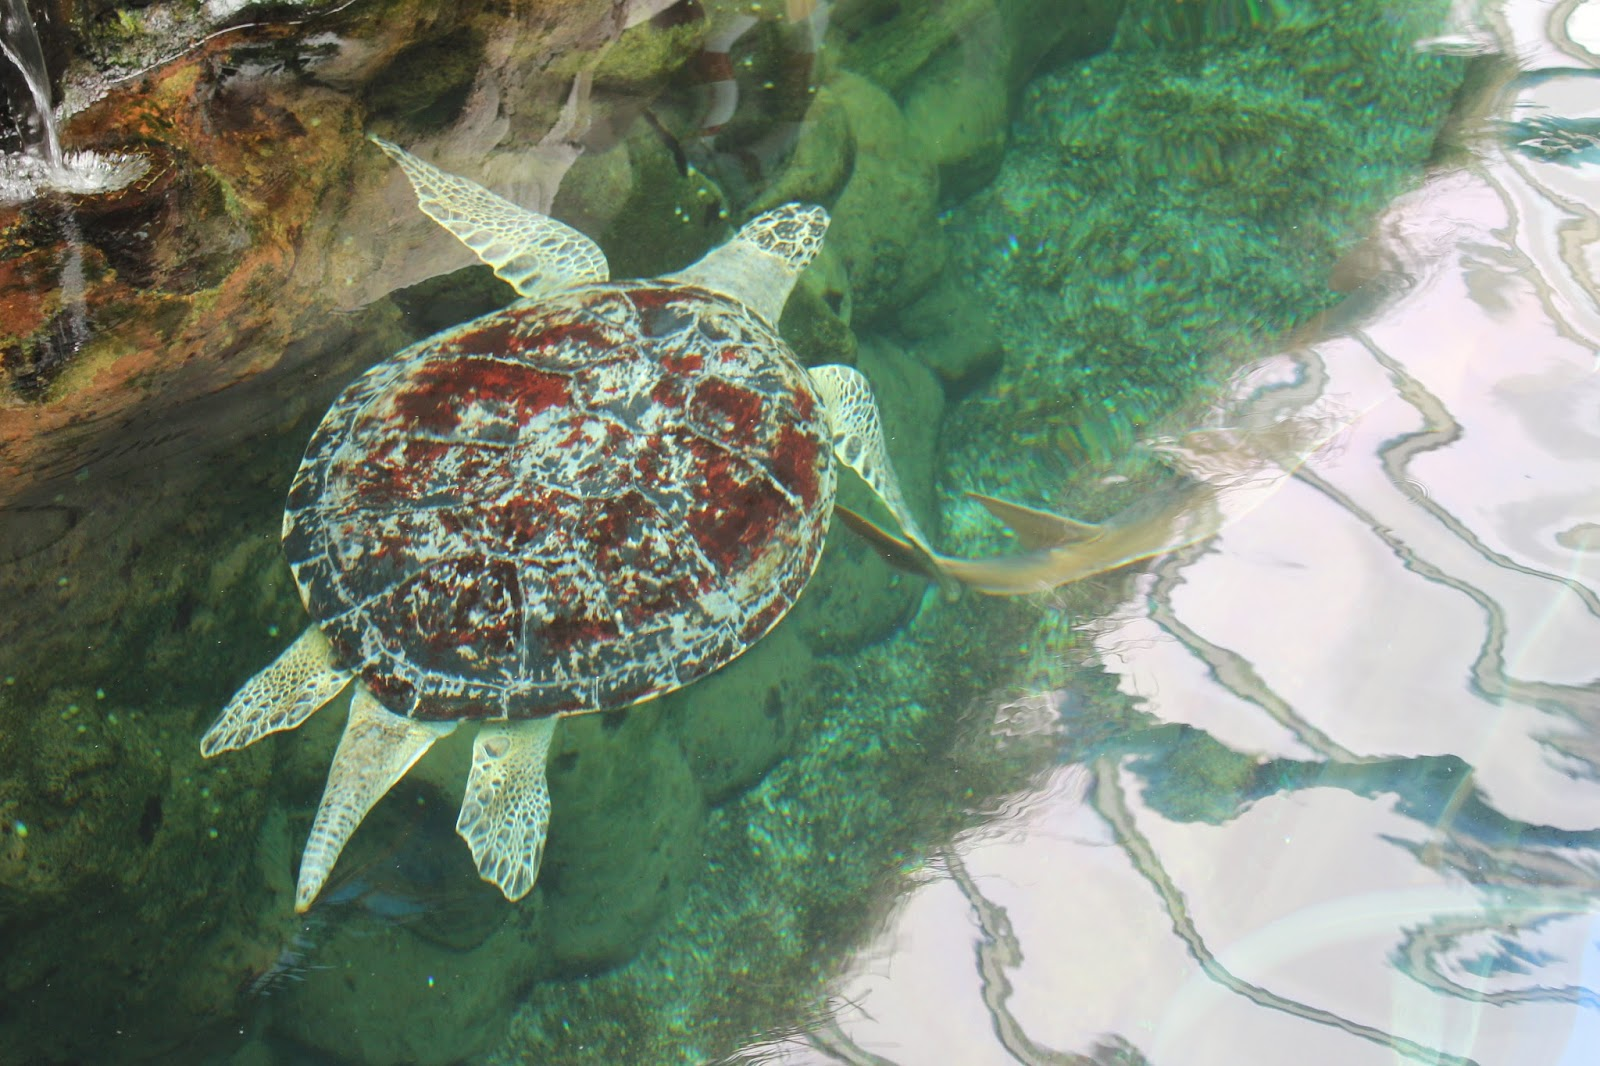 georgina-minter-brown-georgie-frequencies-holiday-bournemouth-birthday-trip-sea-coast-ocean-oceanarium-aquarium-turtle